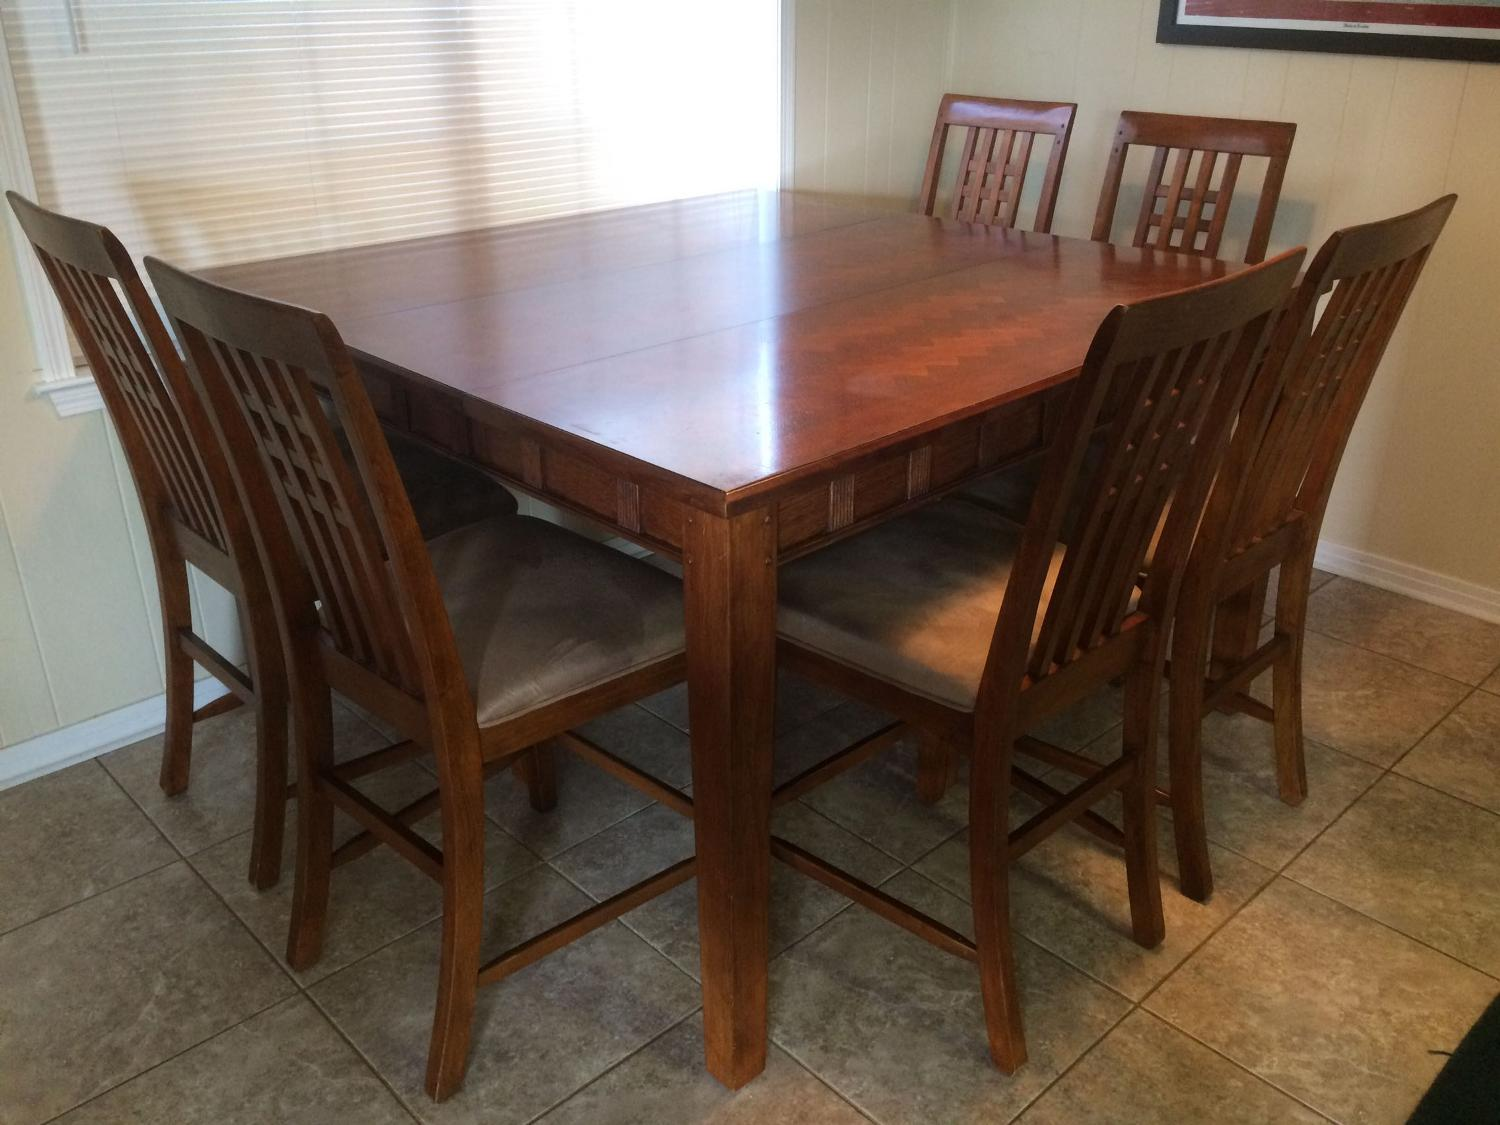 Find more wooden counter height dining table and chairs